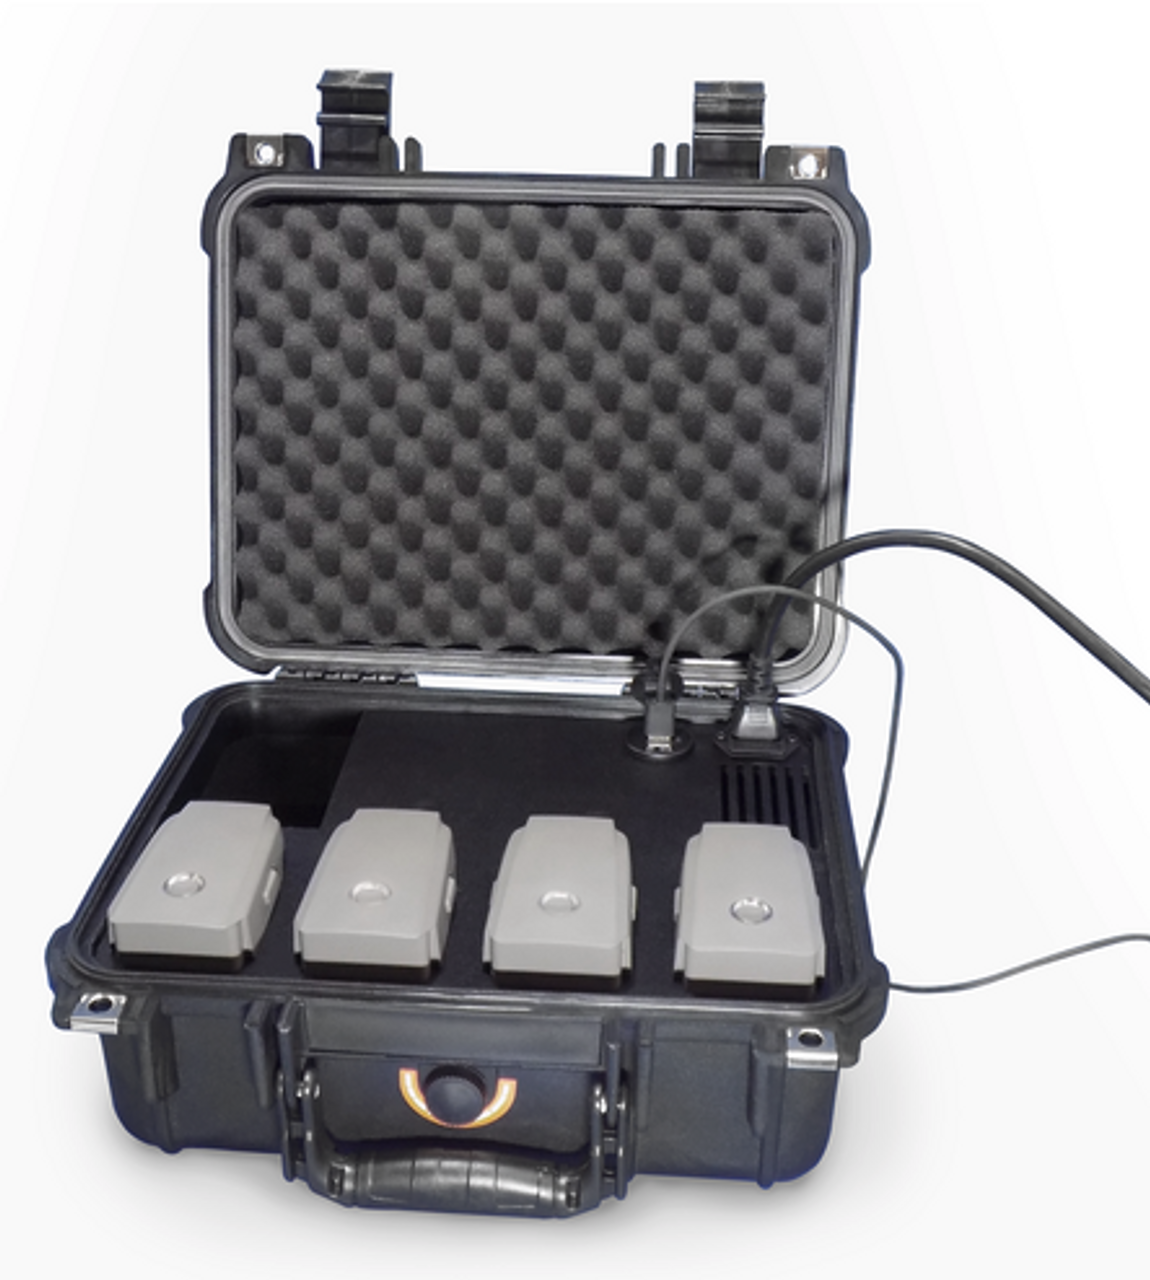 Mavic 2 Series Multi-Battery Charger by Drone-Works